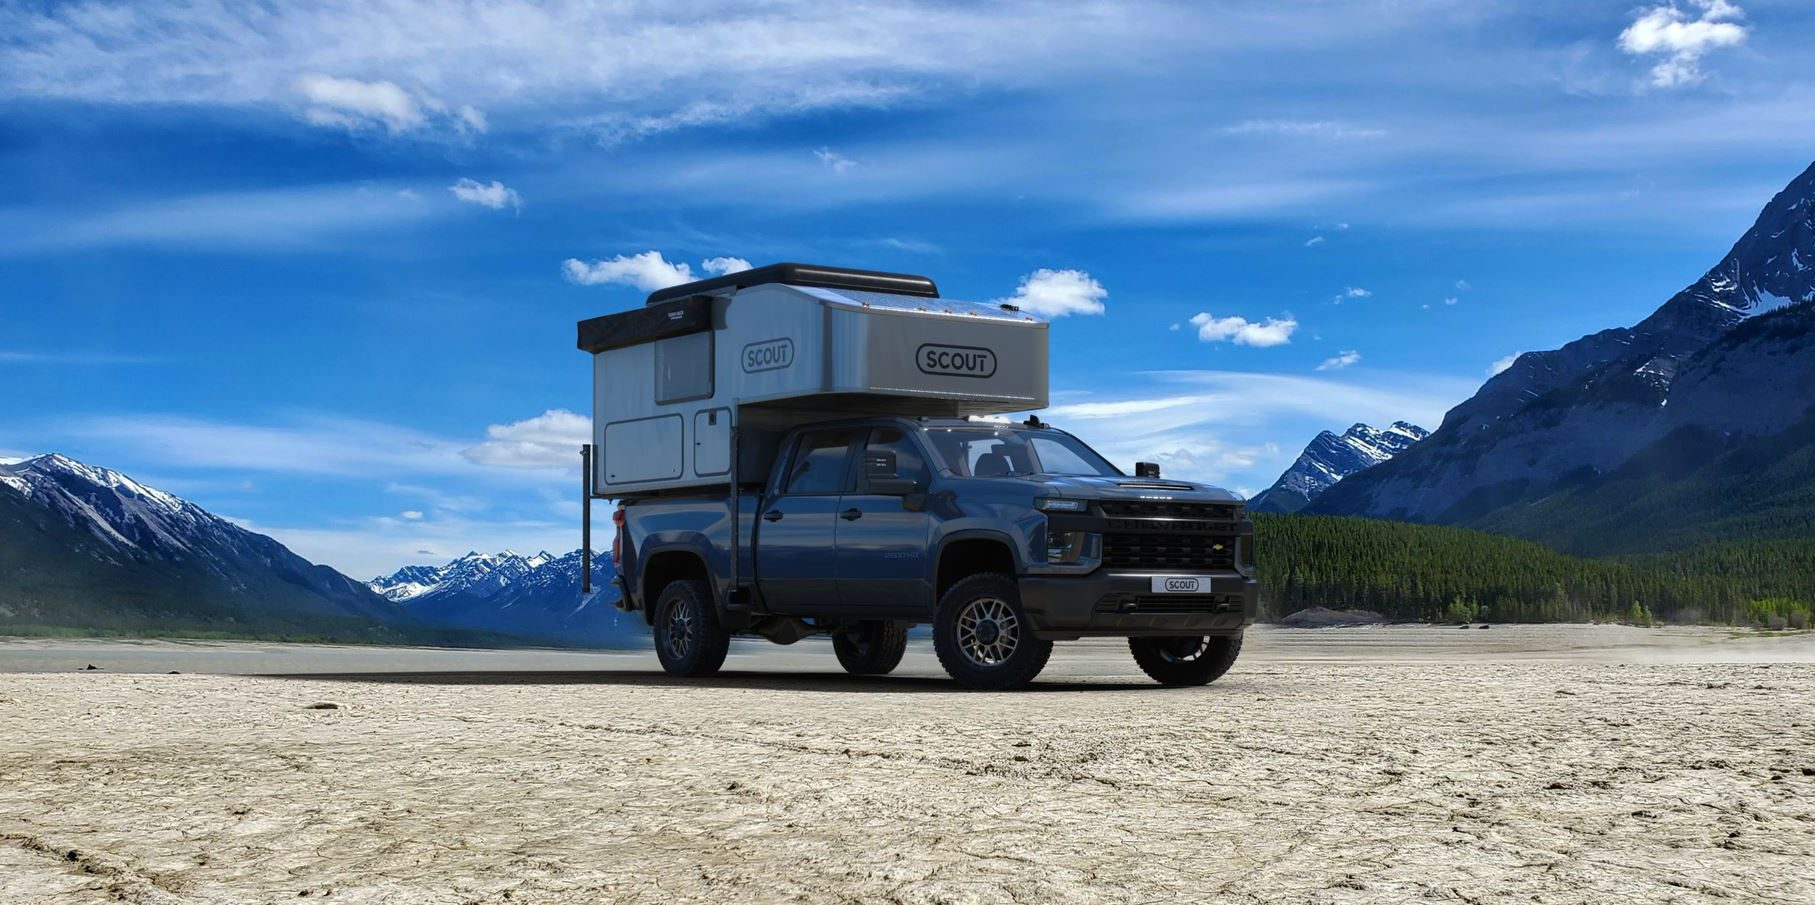 The newest truck camper from Scout Campers, the Kenai